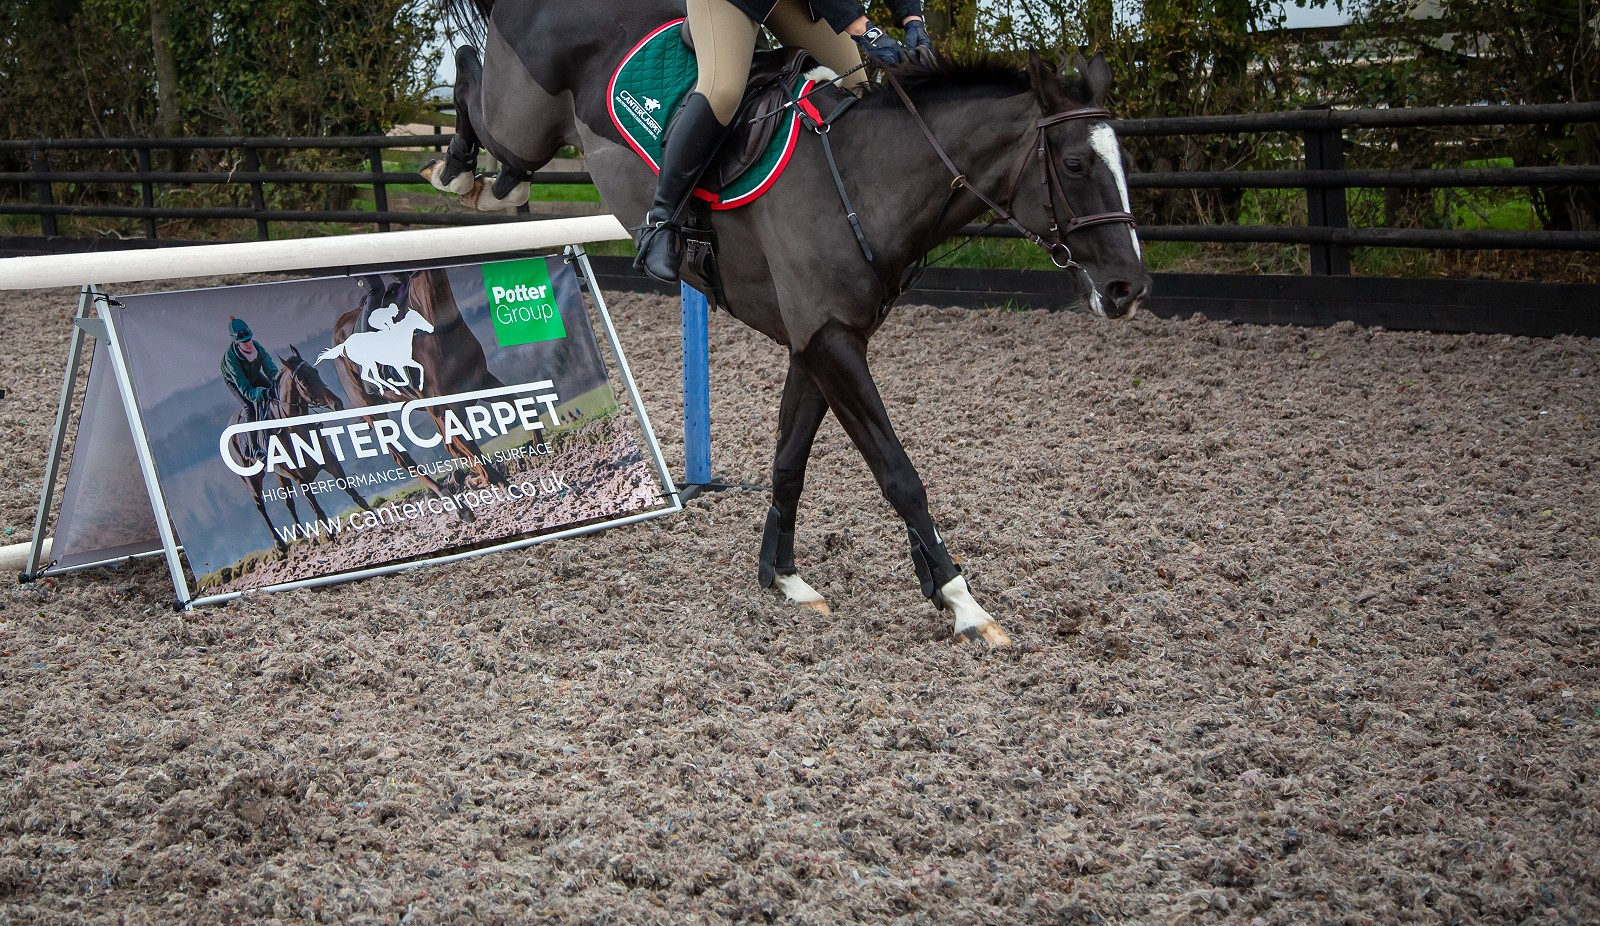 Horse Jumping onto Canter Carpet equestrian surface covered arena. Recycled carpet from Potter Group waste management in Welshpool.